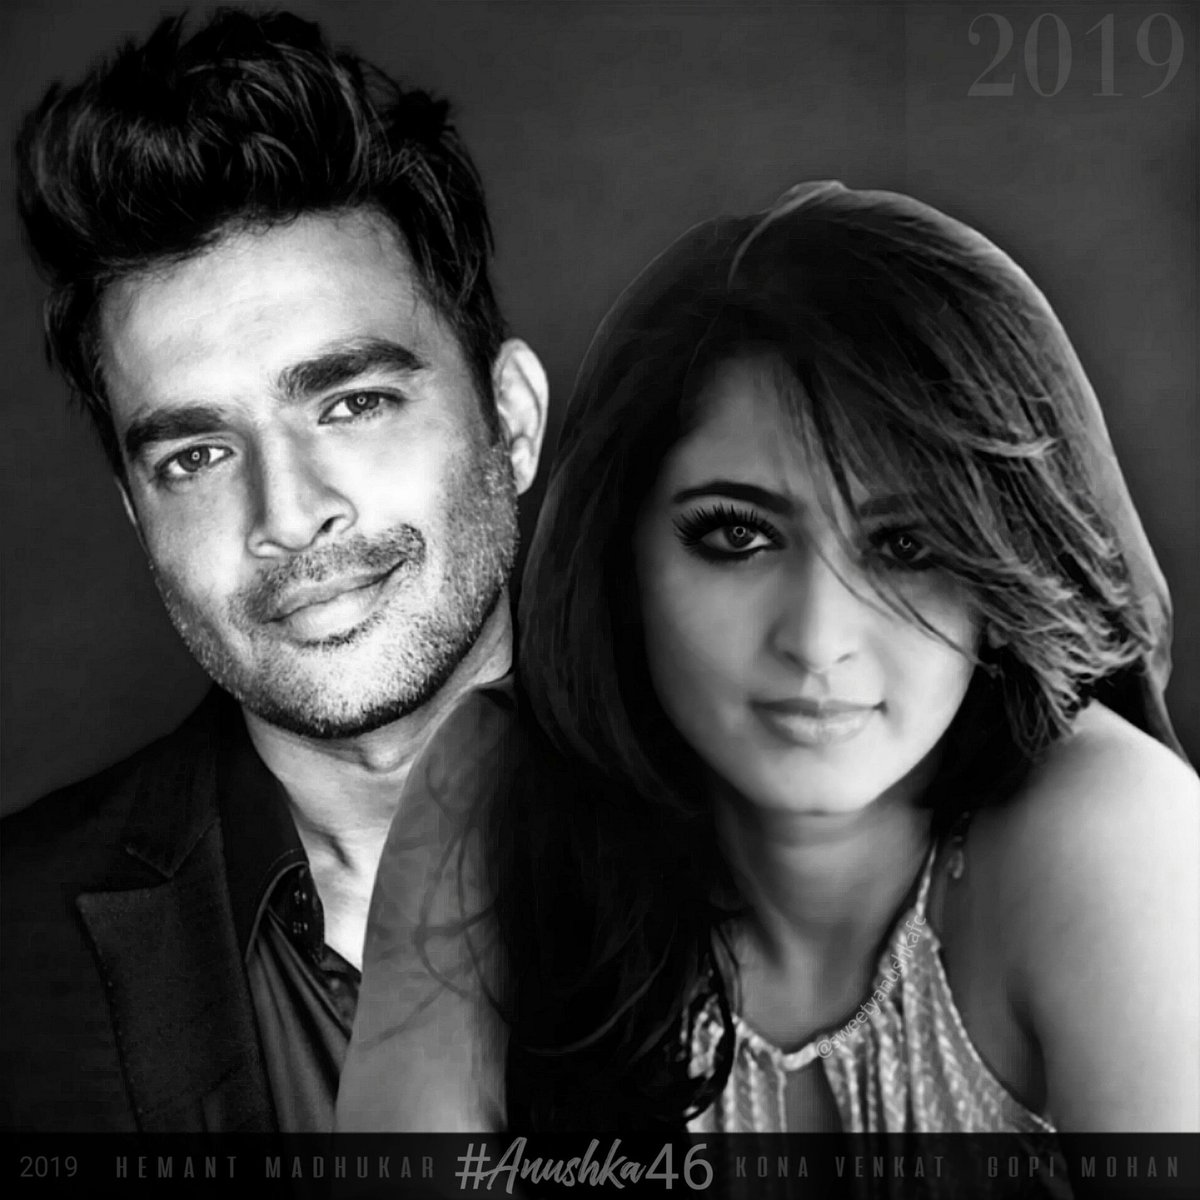 SO EXCITED FOR #Anushka46!!! Shooting starts in 2019!!😍 #AnushkaShetty @ActorMadhavan @actorsubbaraju @peoplemediafcy @KonaFilmCorp @hemantmadhukar @konavenkat99 @Gopimohan